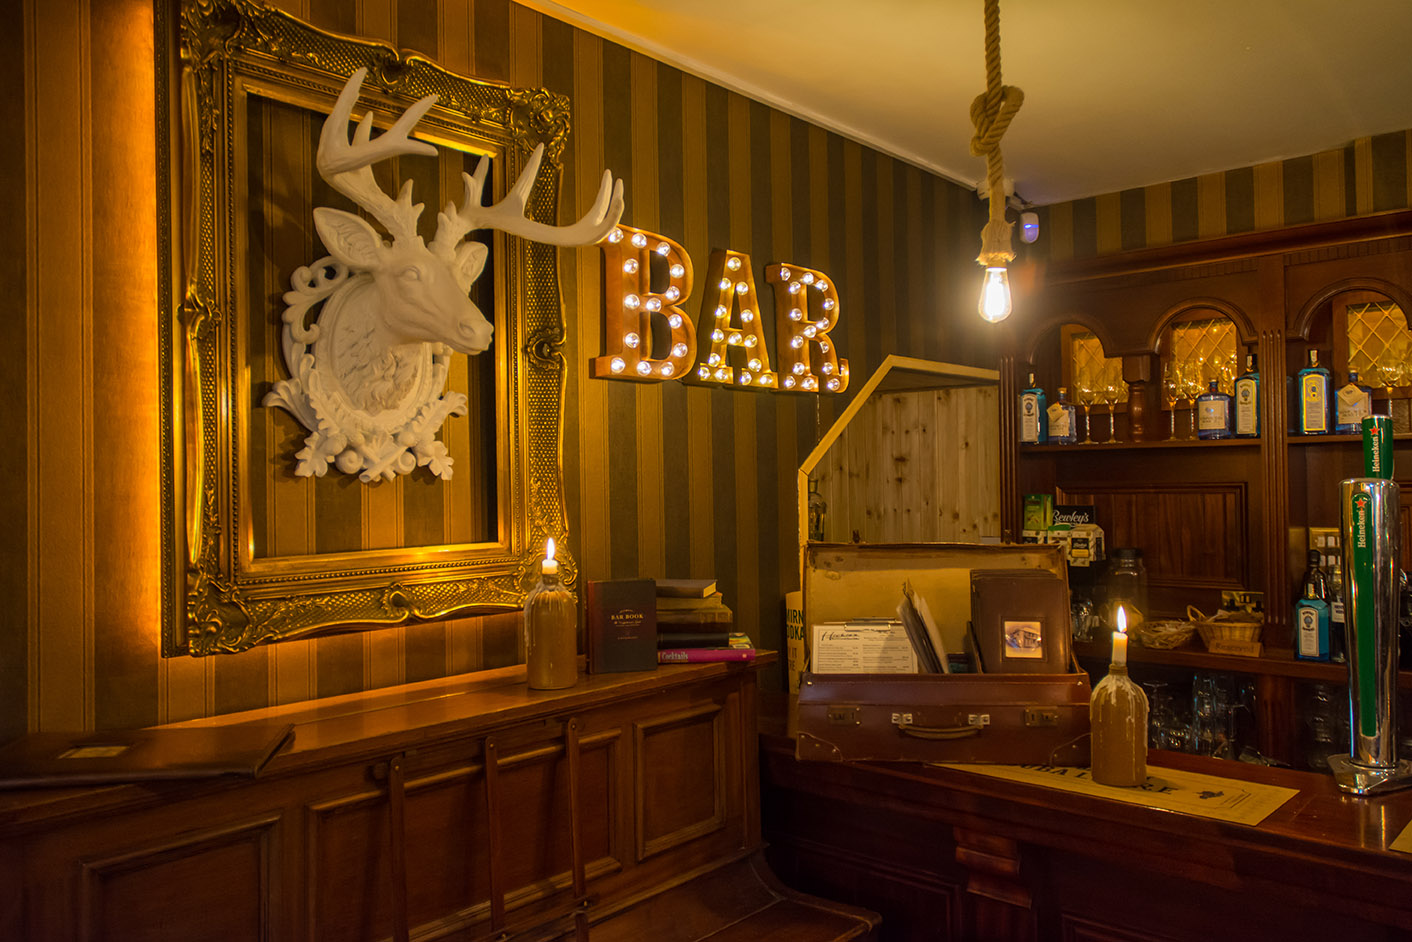 Hickies Kilkee Bar area designed by Tess Stanford Interior Architects